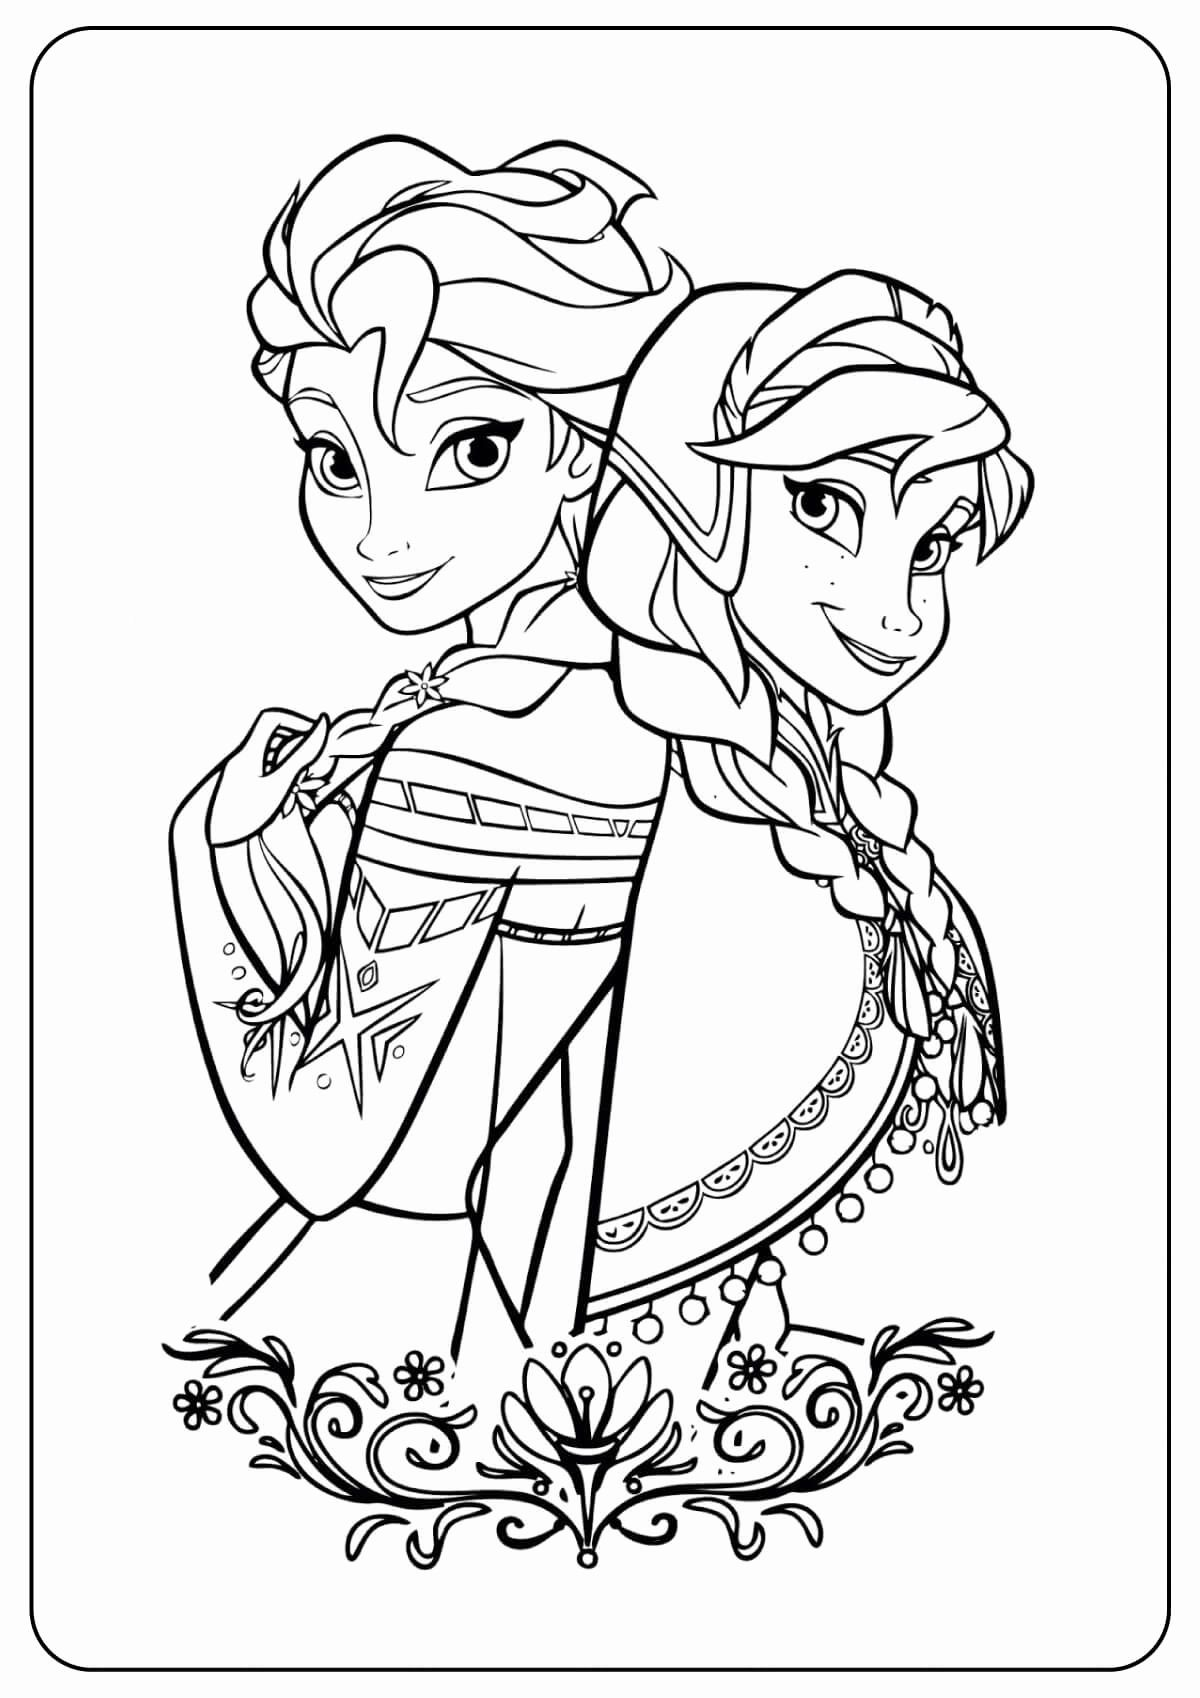 Coloring Pages For Kids Disney Elsa And Anna In 2020 Disney Princess Coloring Pages Elsa Coloring Pages Disney Coloring Sheets